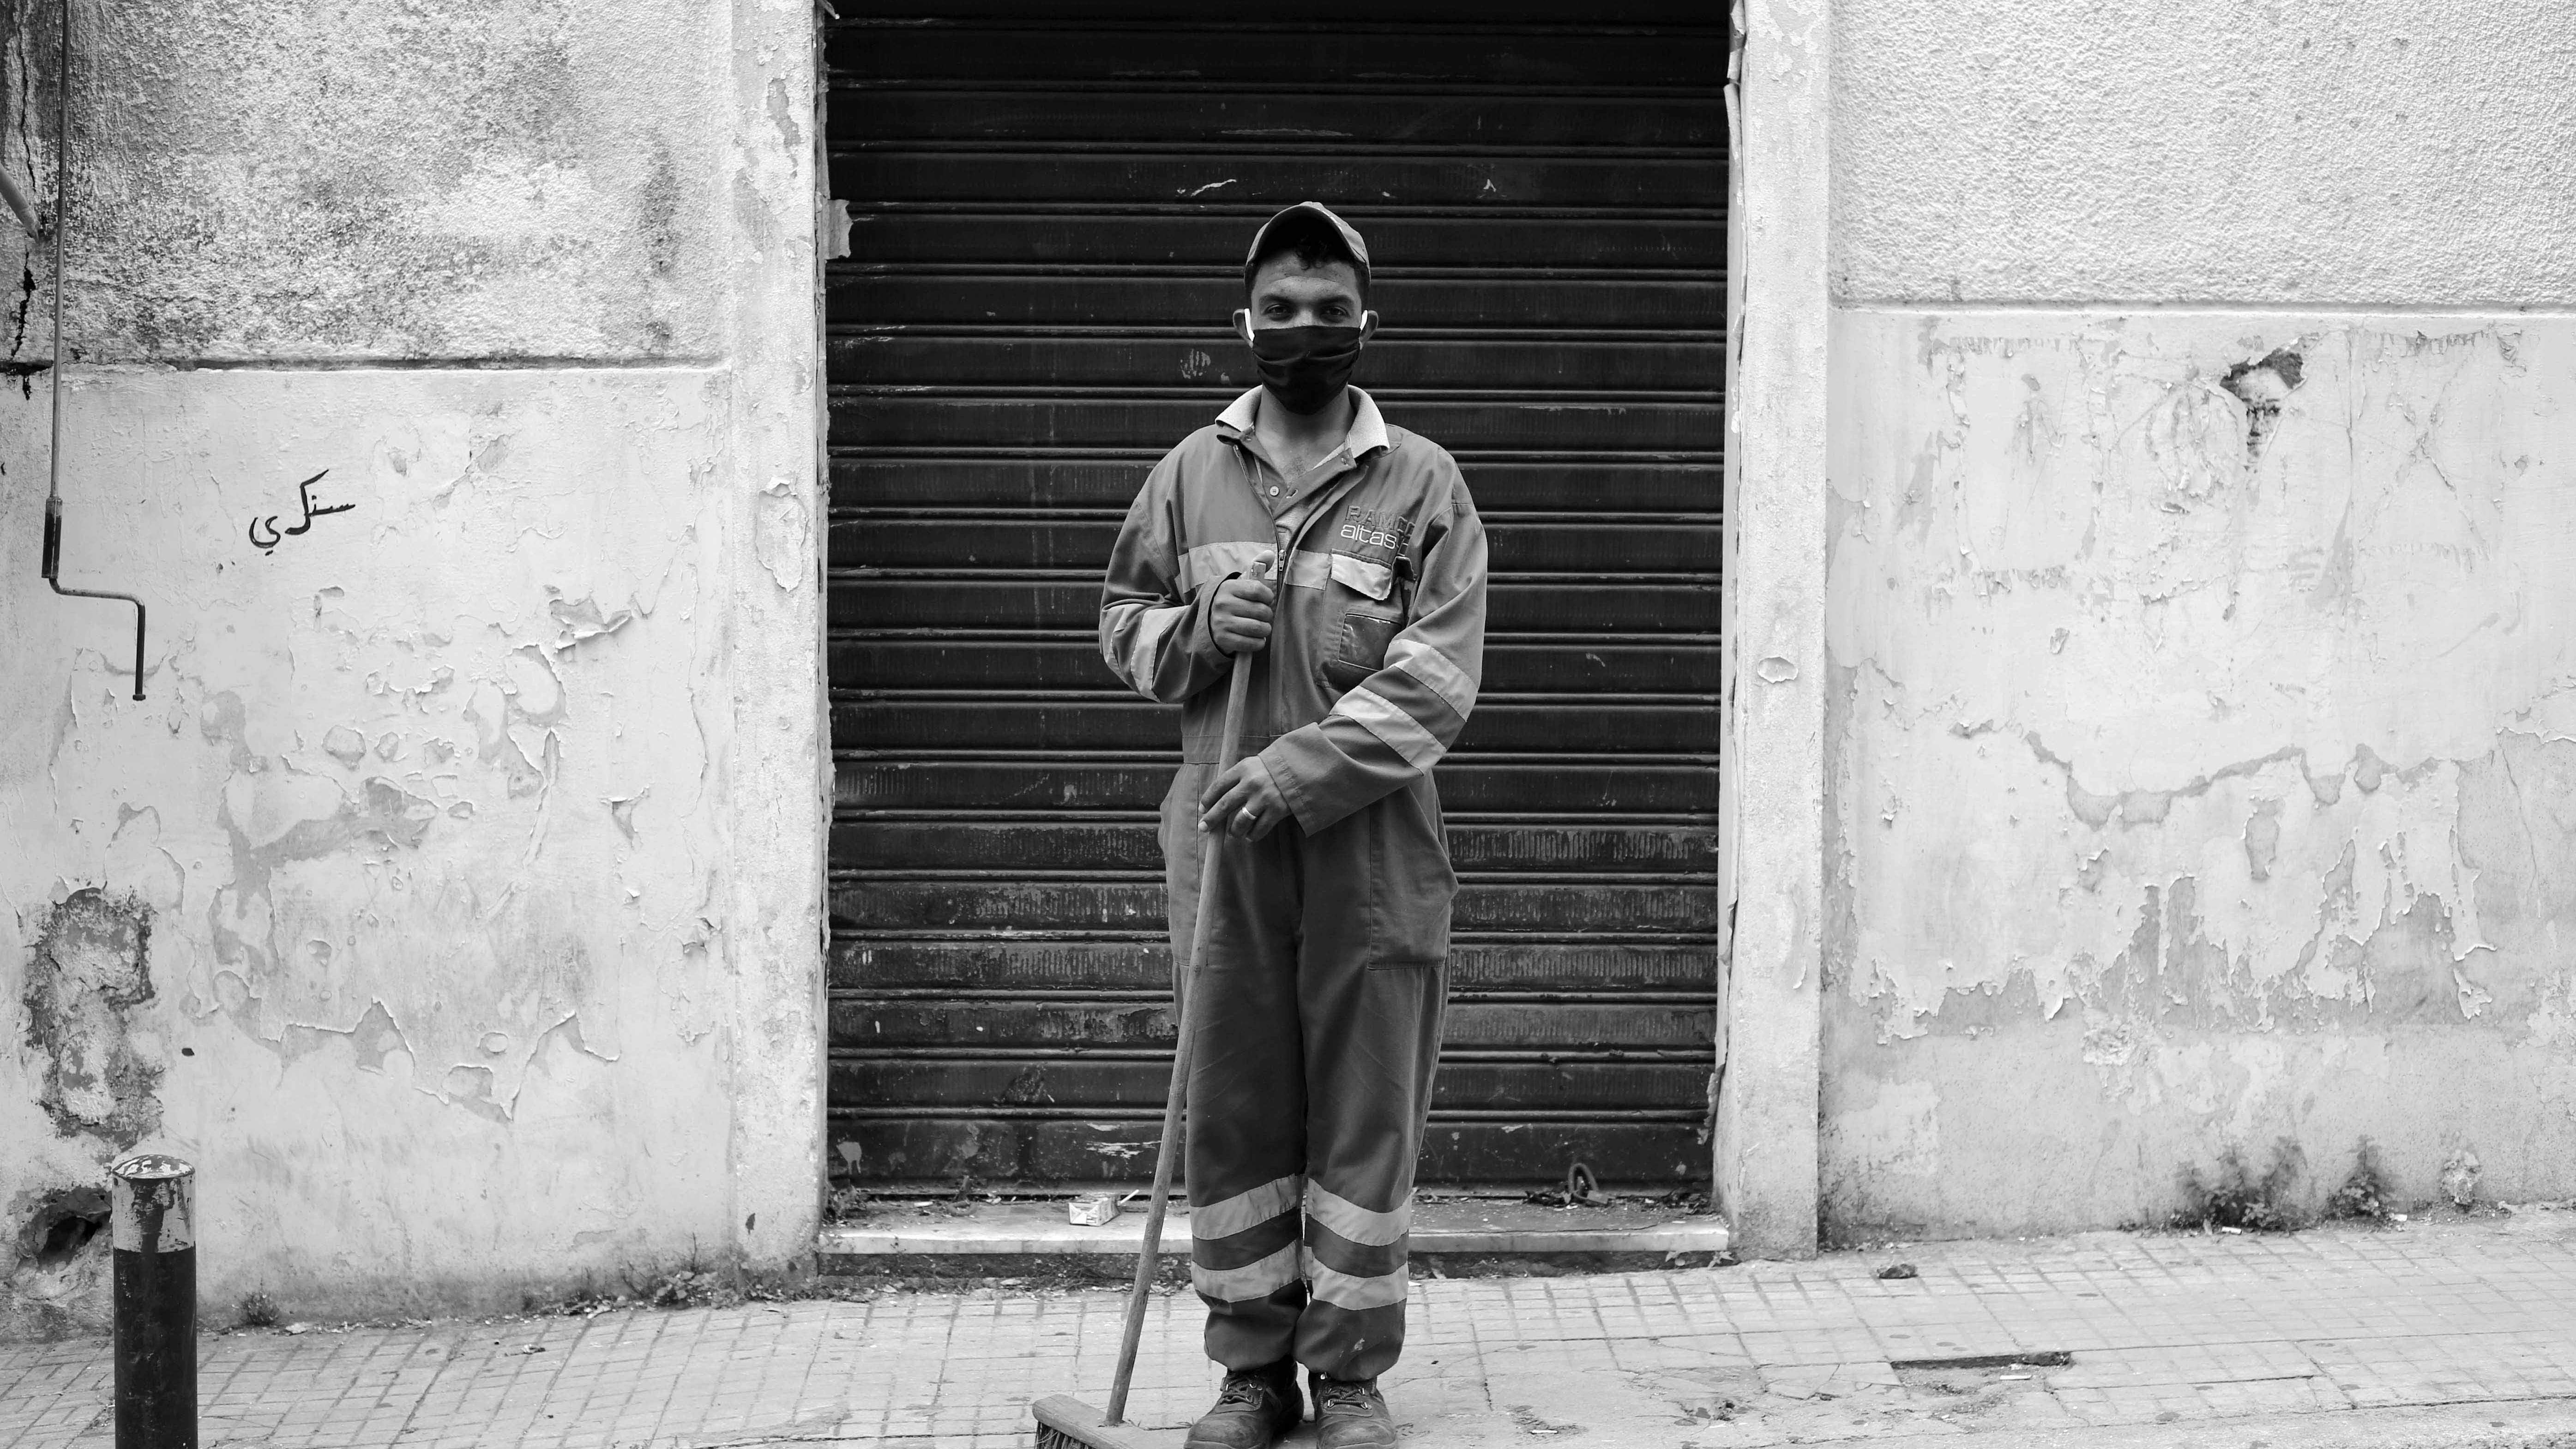 A sanitation worker employed by Lebanese company Ramco pauses for a picture while working a shift at the peak of the COVID-19 pandemic. April 6, 2020. (Marwan Tahtah/The Public Source)